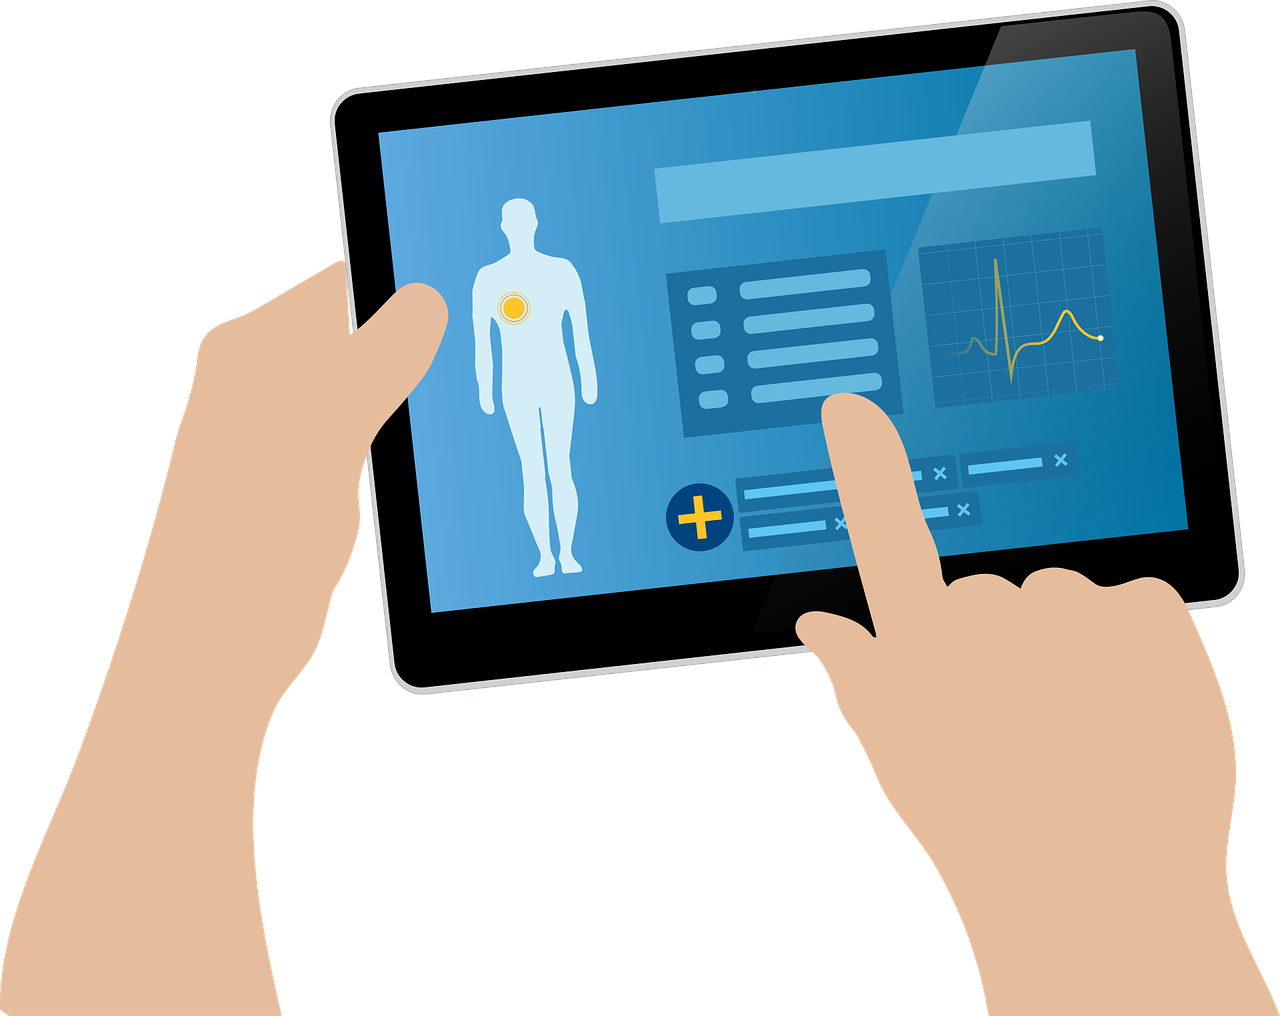 Cloud-based EMRs offer tools for easy patient data sharing